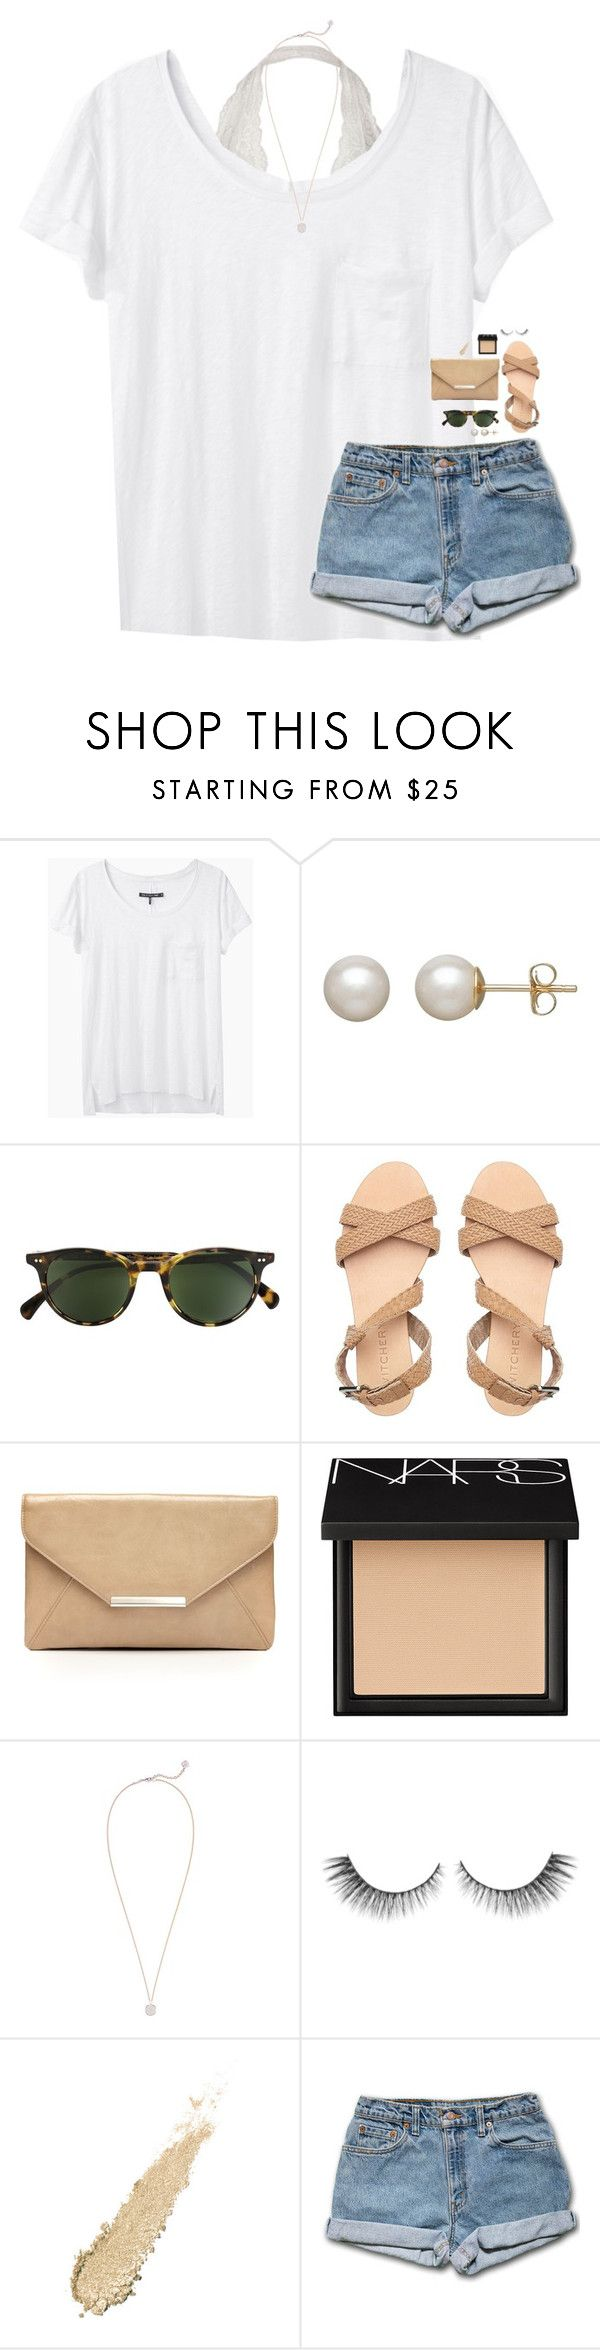 """""""ivy league tshirts are so cute!"""" by classynsouthern ❤ liked on Polyvore featuring rag & bone, Honora, Oliver Peoples, Style & Co., NARS Cosmetics and Kendra Scott"""